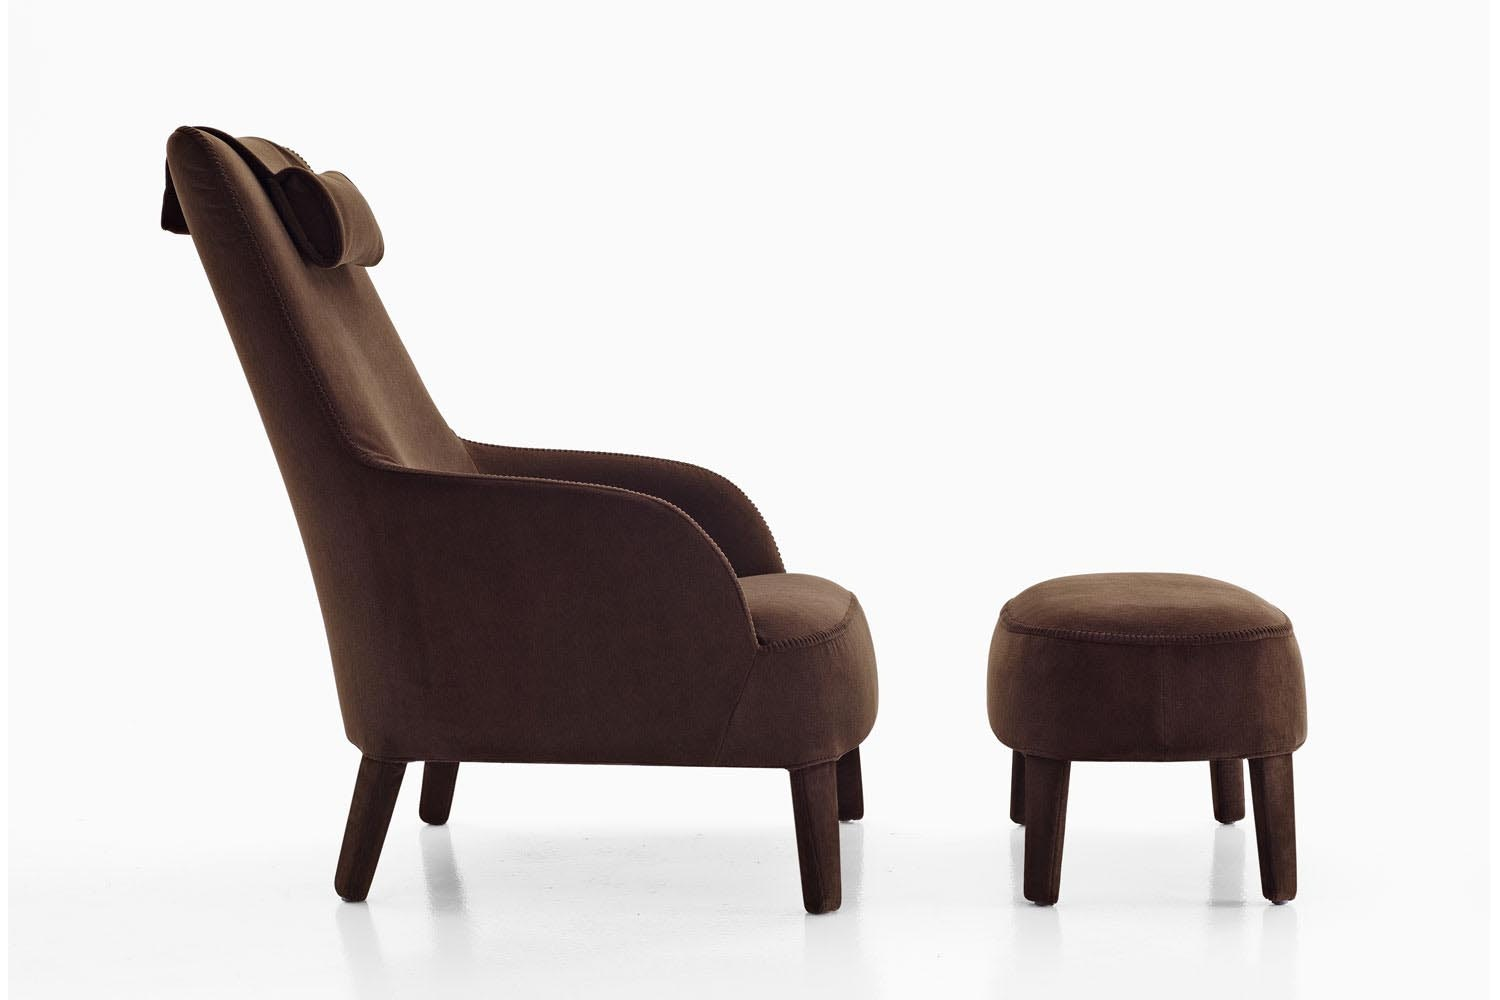 Febo 2013 Armchair by Antonio Citterio for Maxalto